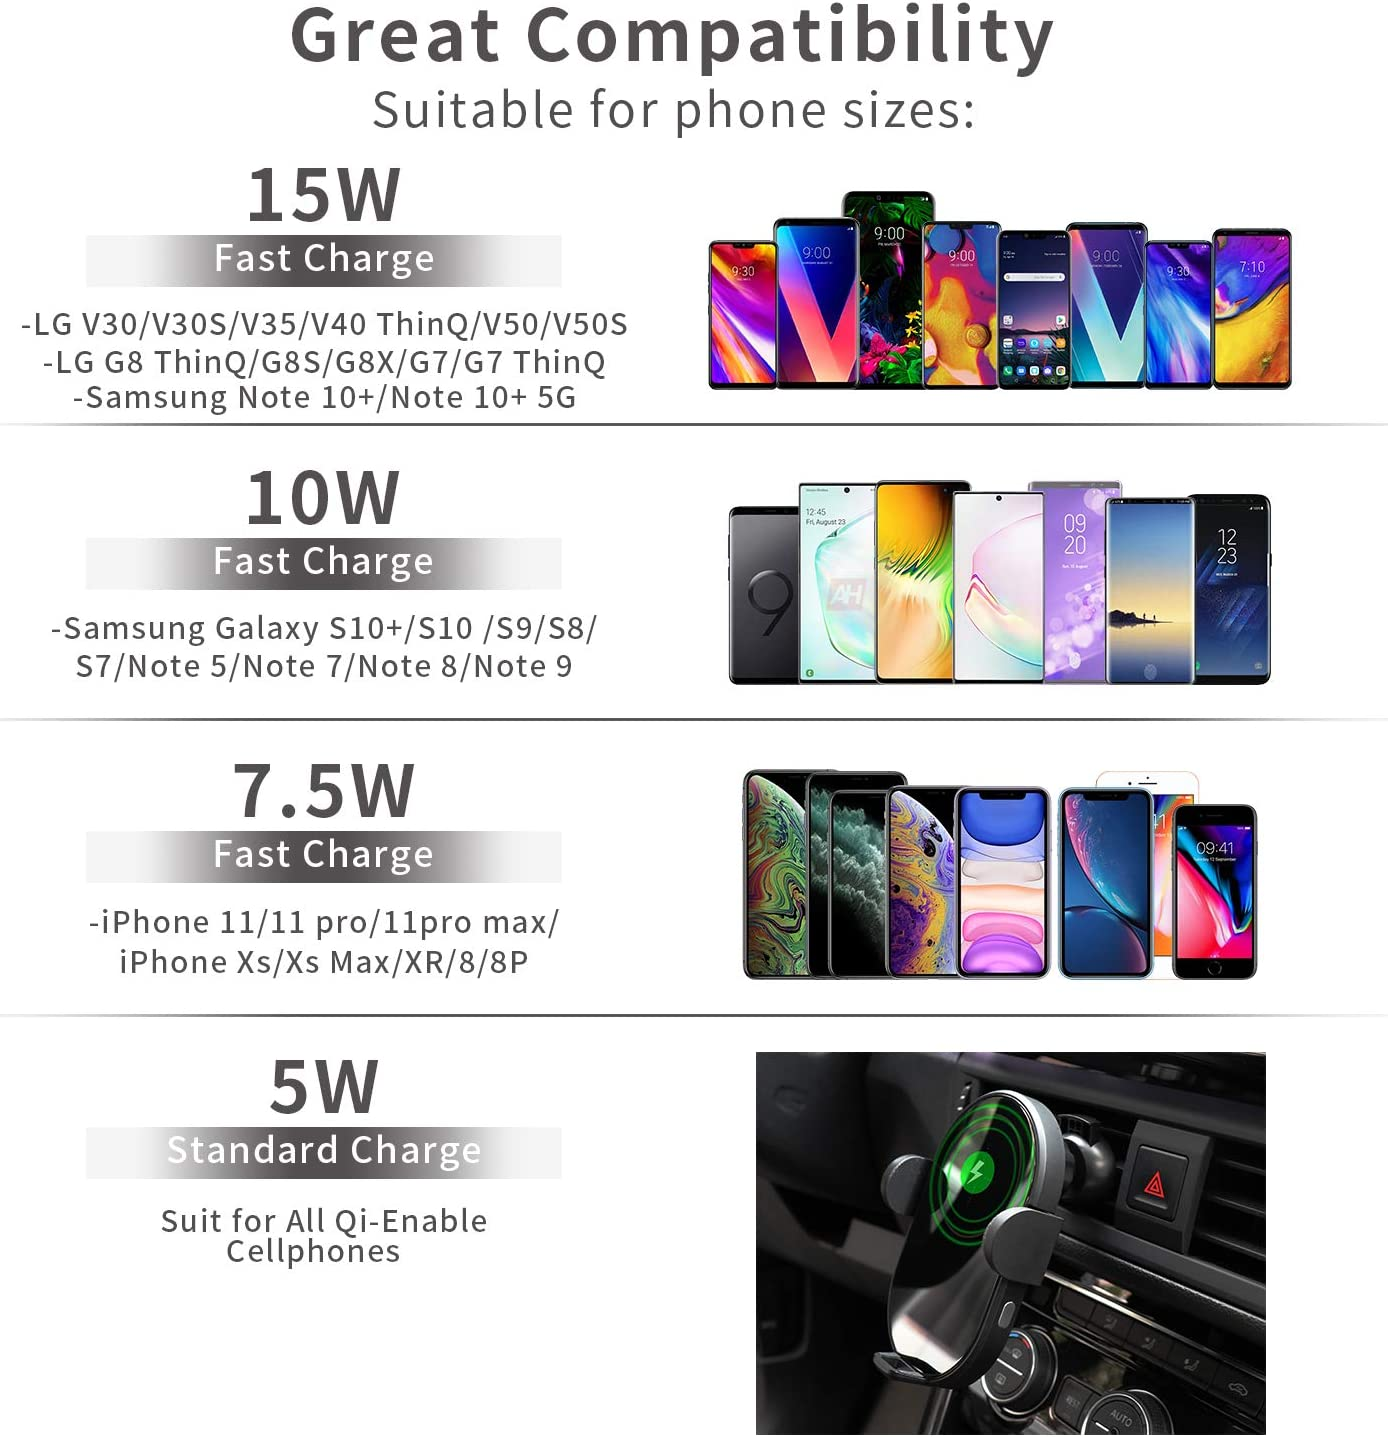 Samsung S10//S10+//S9//S9+//S8//S8+ LIEBMAYA Wireless Car Charger,15W Qi Fast Charging Car Mount Charger Auto-Clamping Windshield Dash Air Vent Phone Holder Compatible with iPhone 11Pro//Max//XR//11//X//8